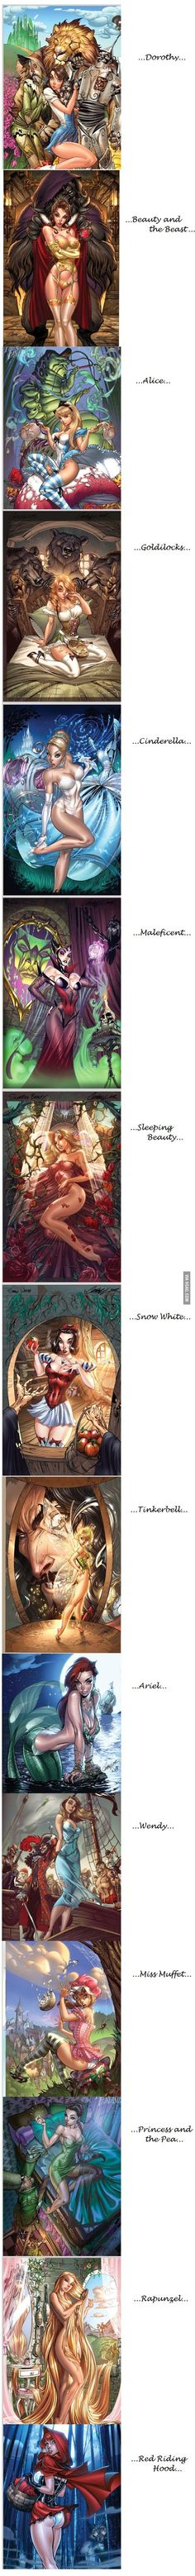 Just Disney Princesses They got Maleficent wrong. That is the Evil Queen